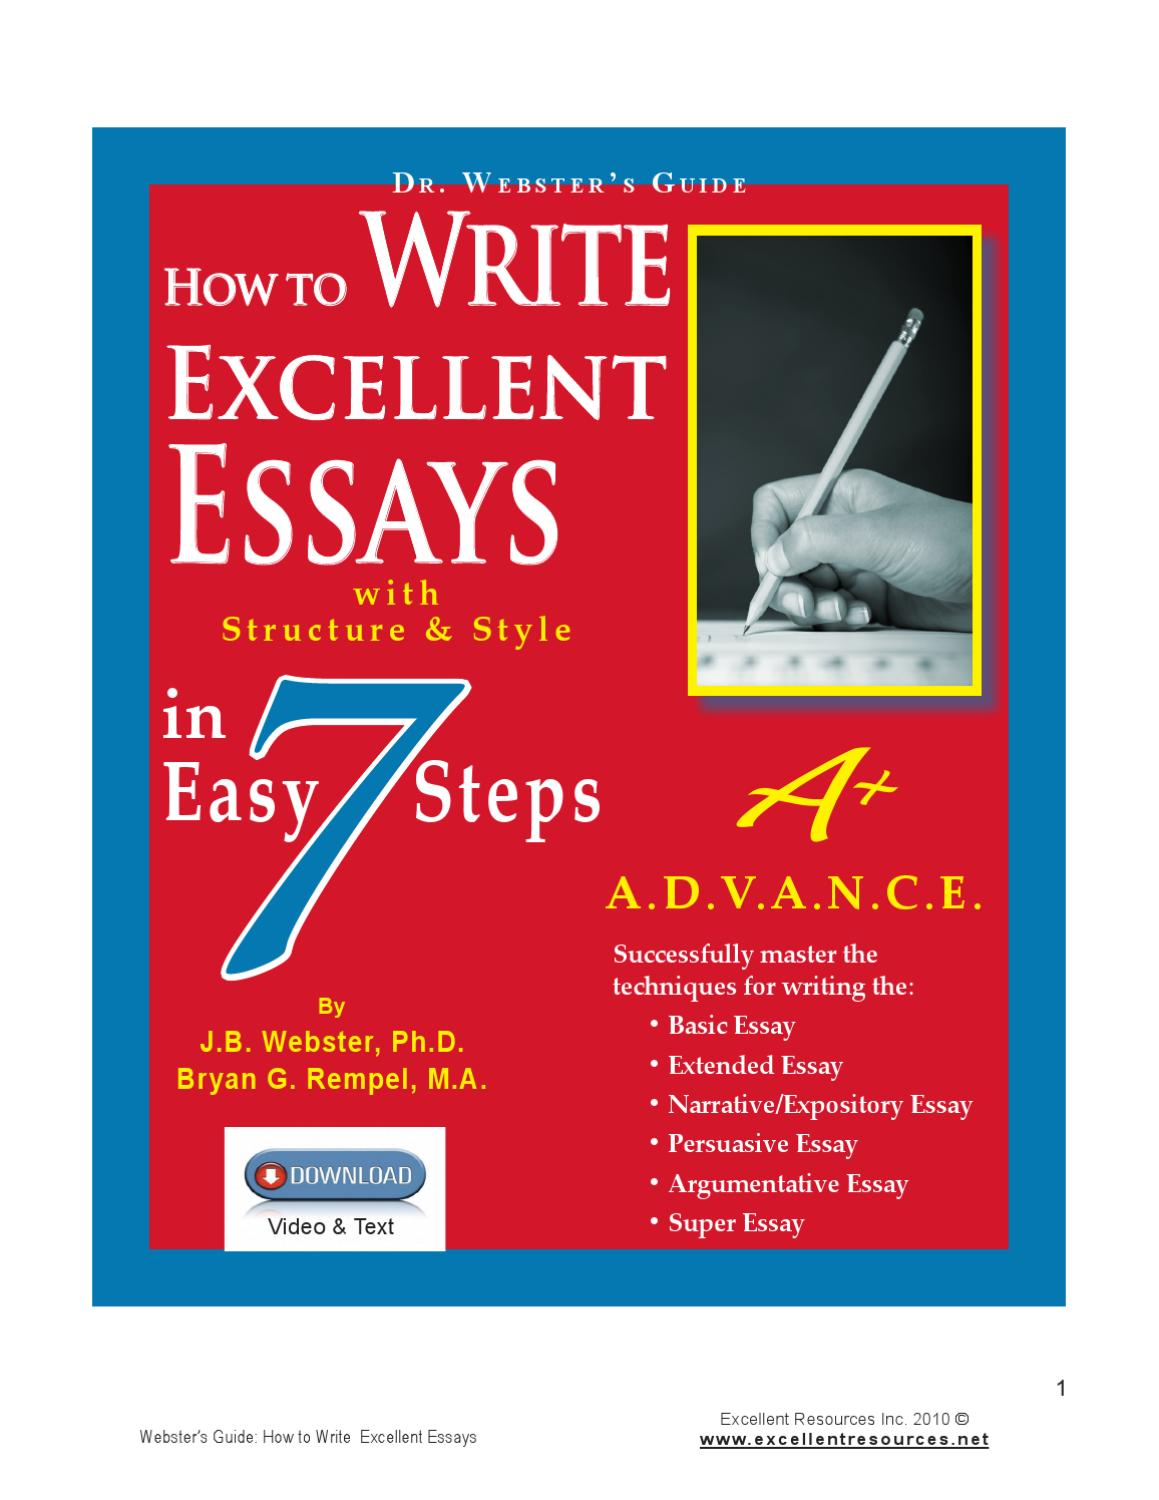 The Best American Essay Series   Houghton Mifflin Harcourt